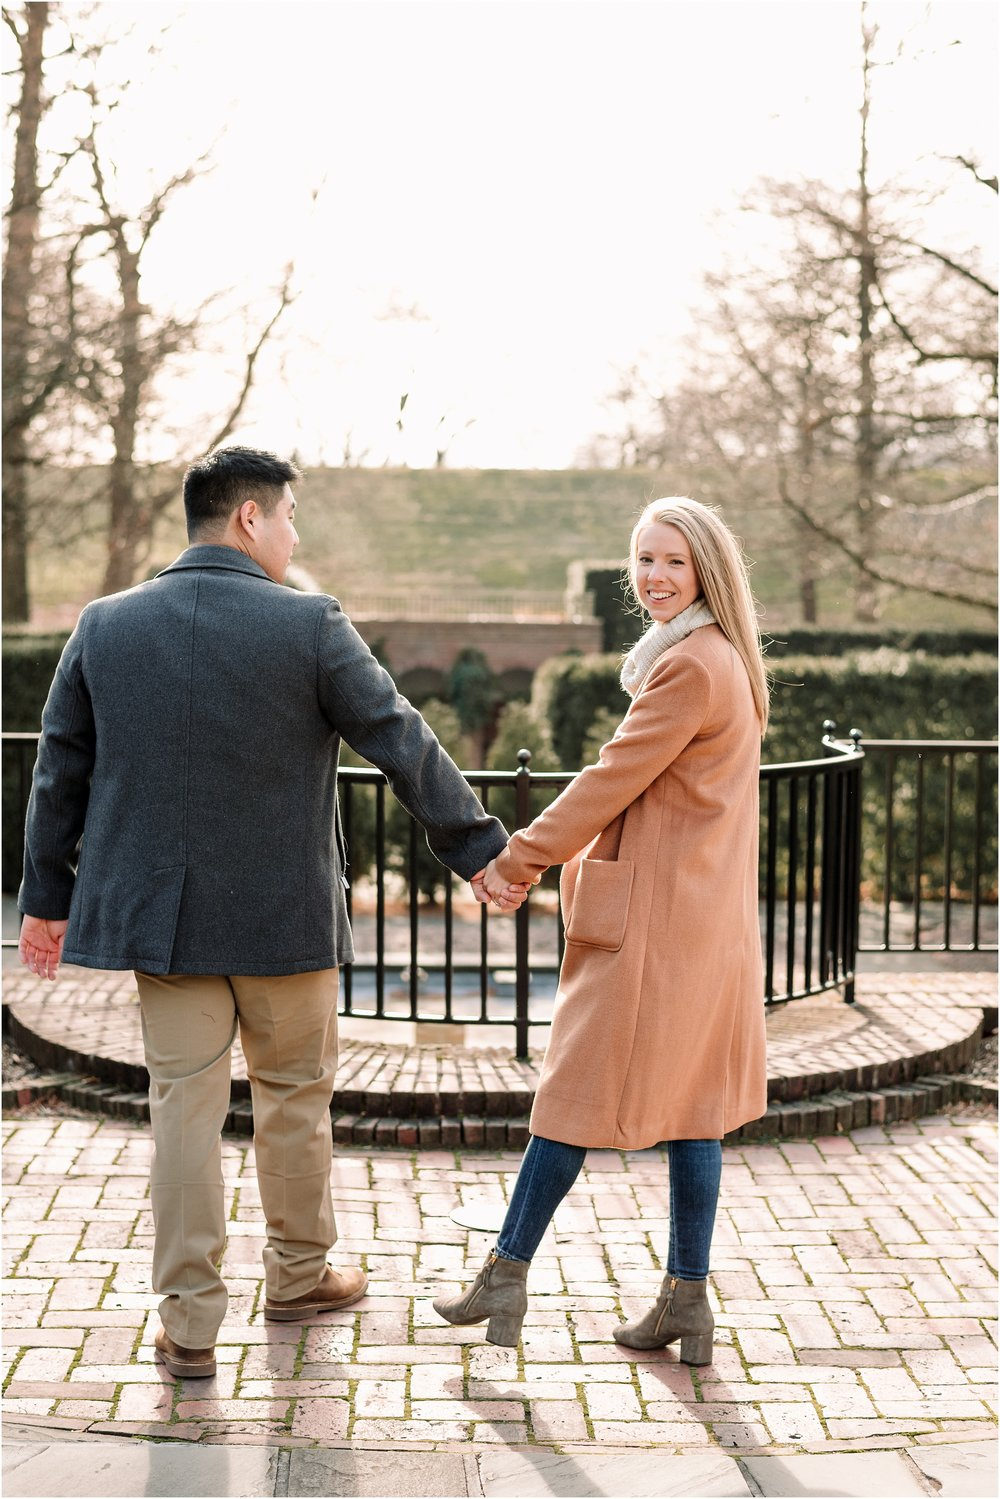 hannah leigh photography longwood gardens engagement session_2624.jpg